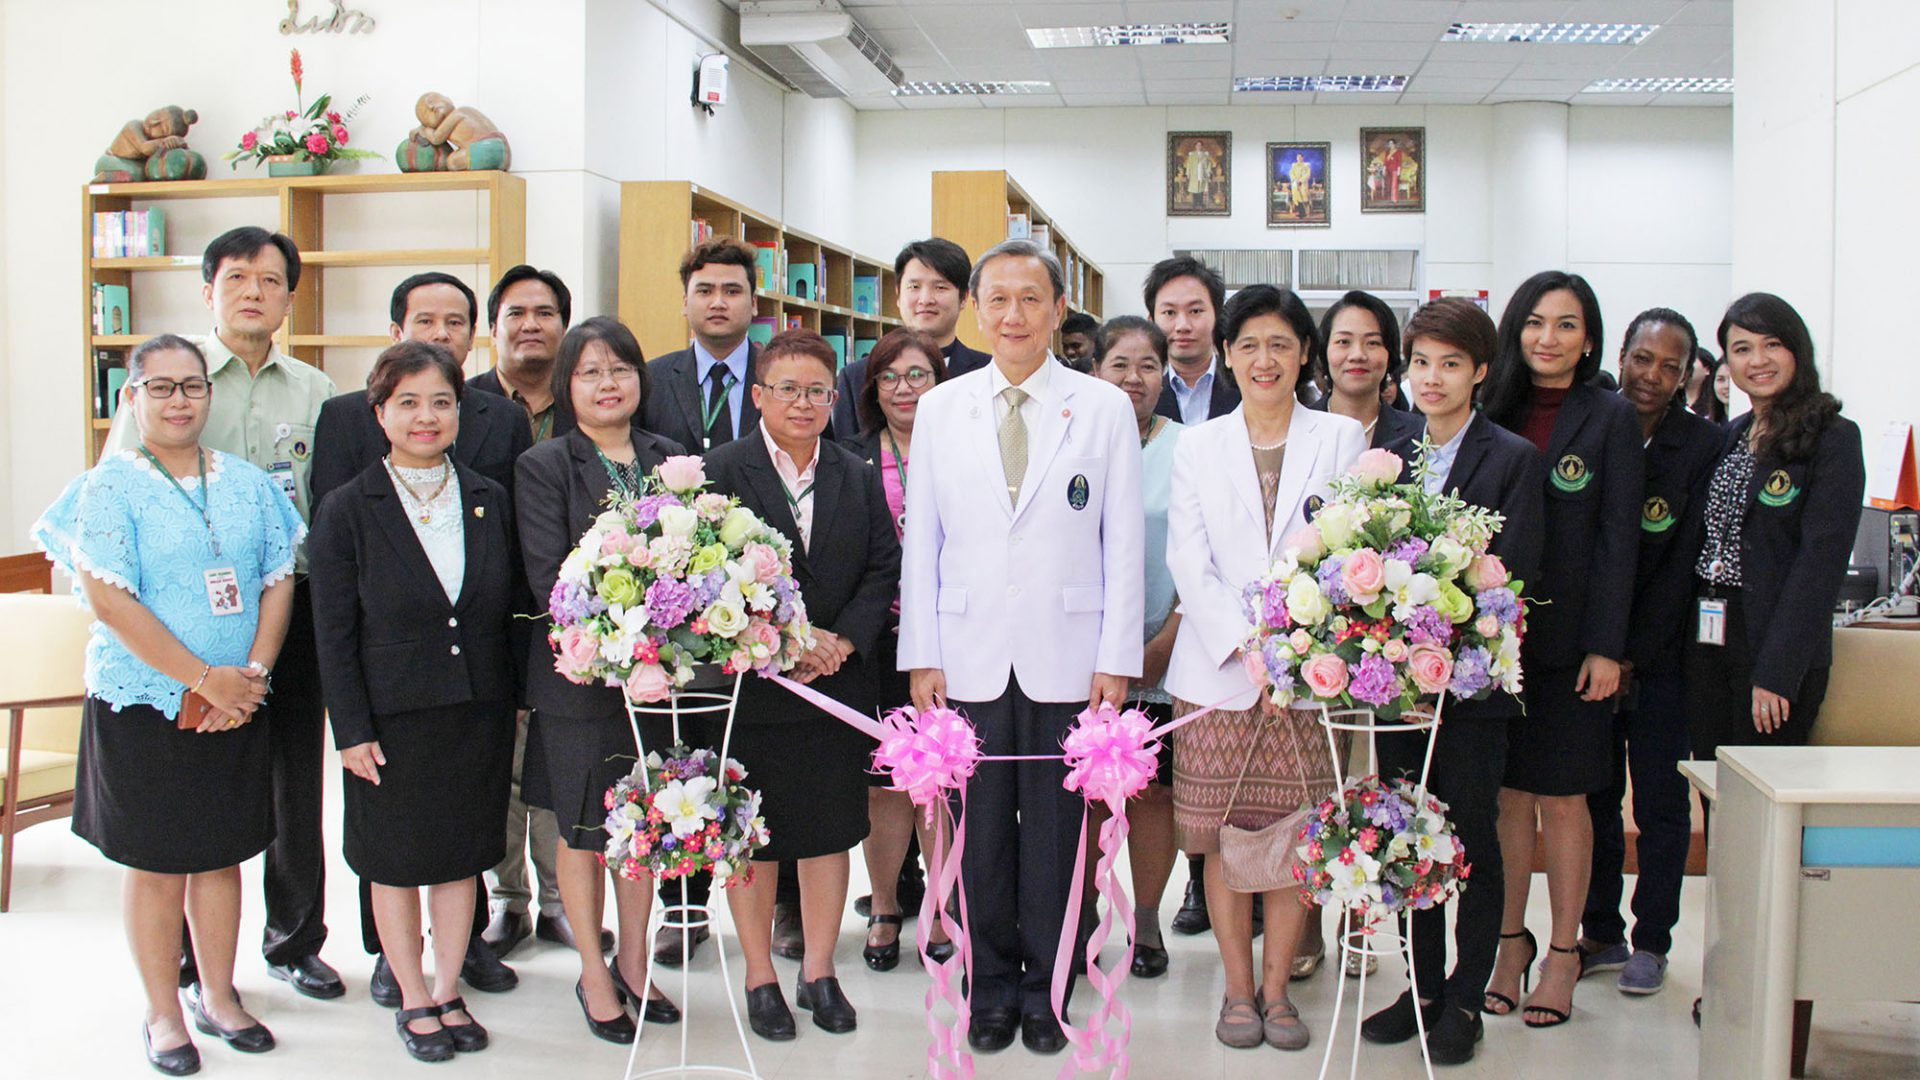 The Grand Opening of The Library of Sirindhorn School of Prosthetics and Orthotics